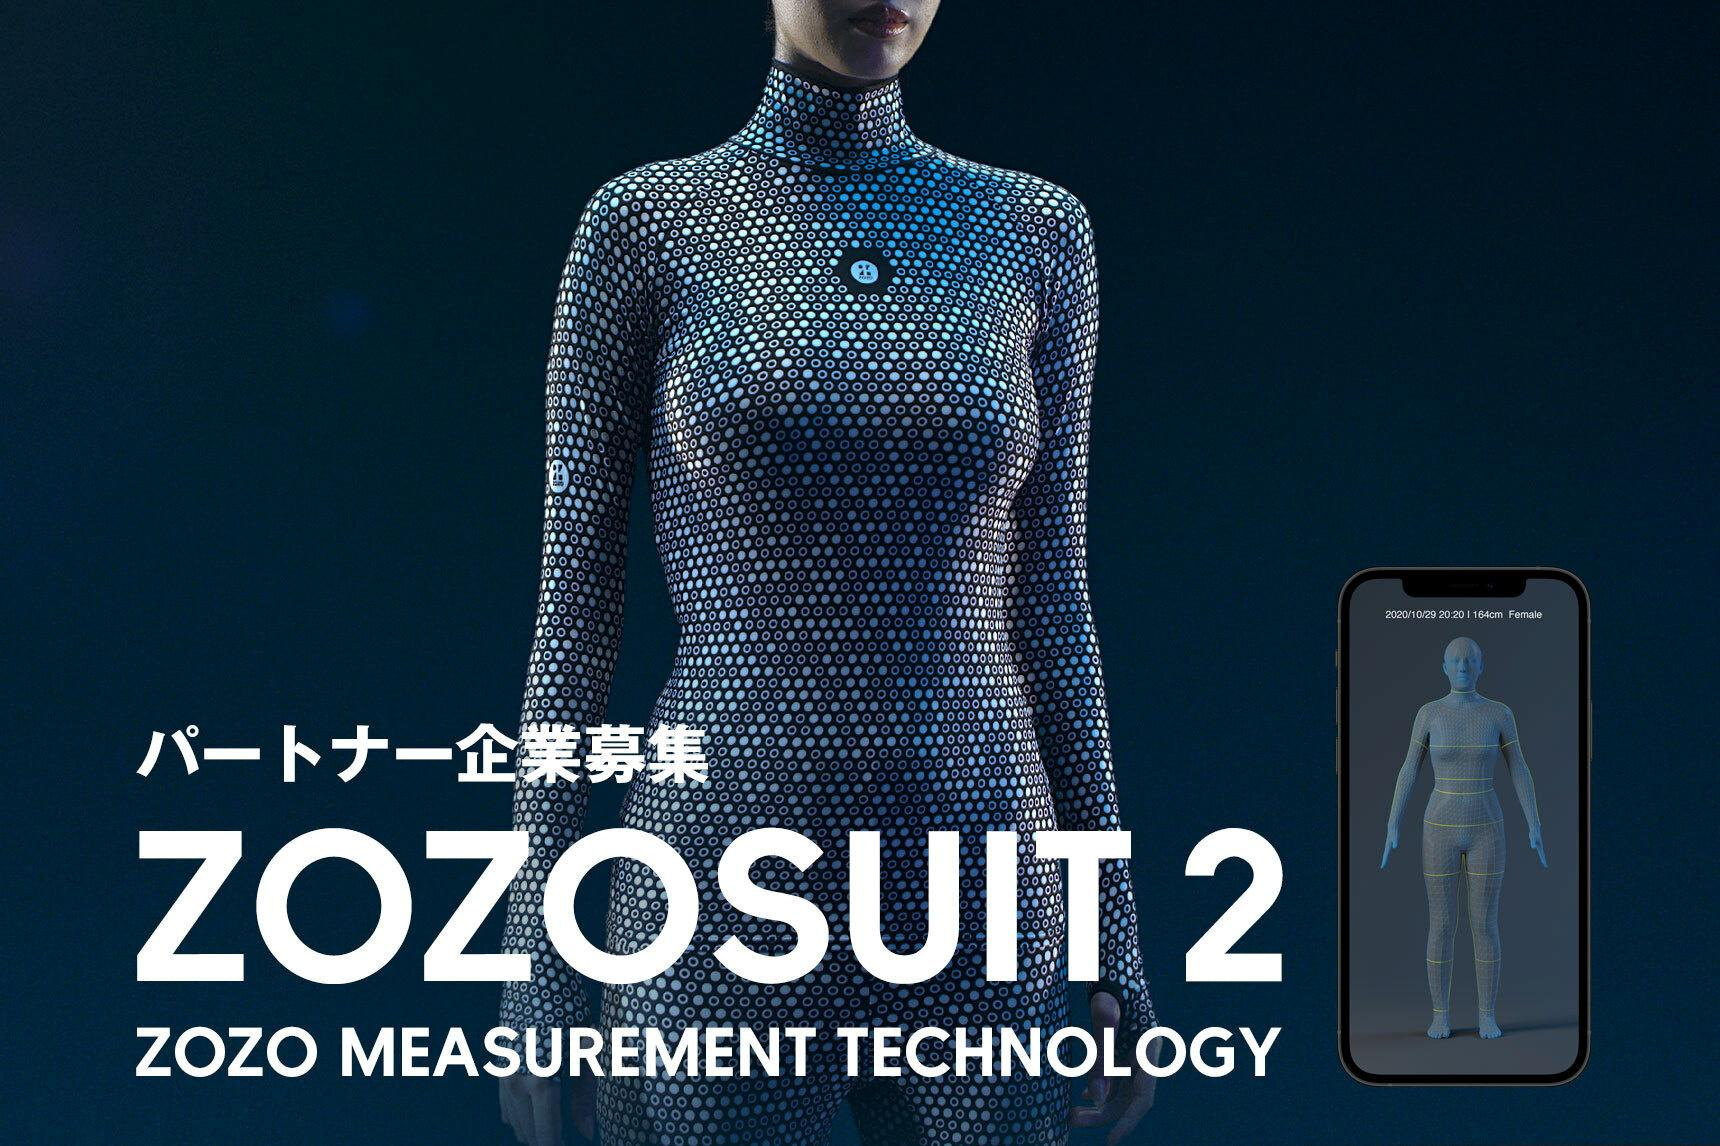 Online fashion retailer Zozo's body-measuring suit